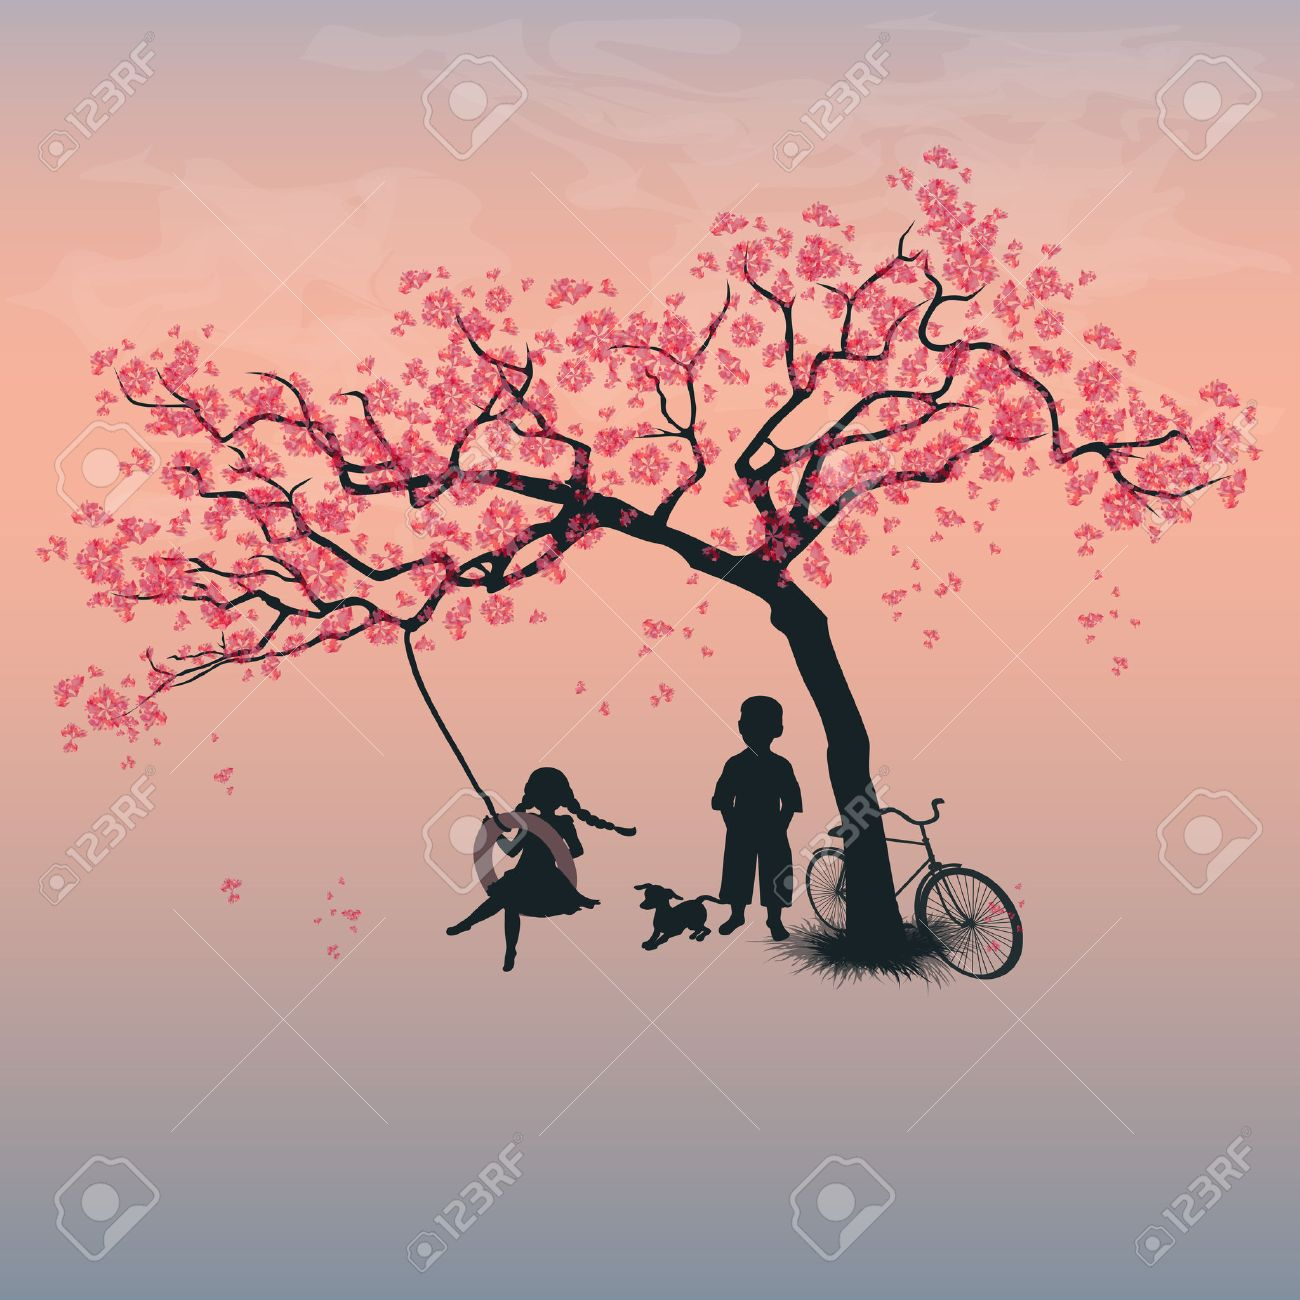 Children playing on a tire swing. Boy, girl and dog under the tree. Springtime. Cherry blossoms - 46107295